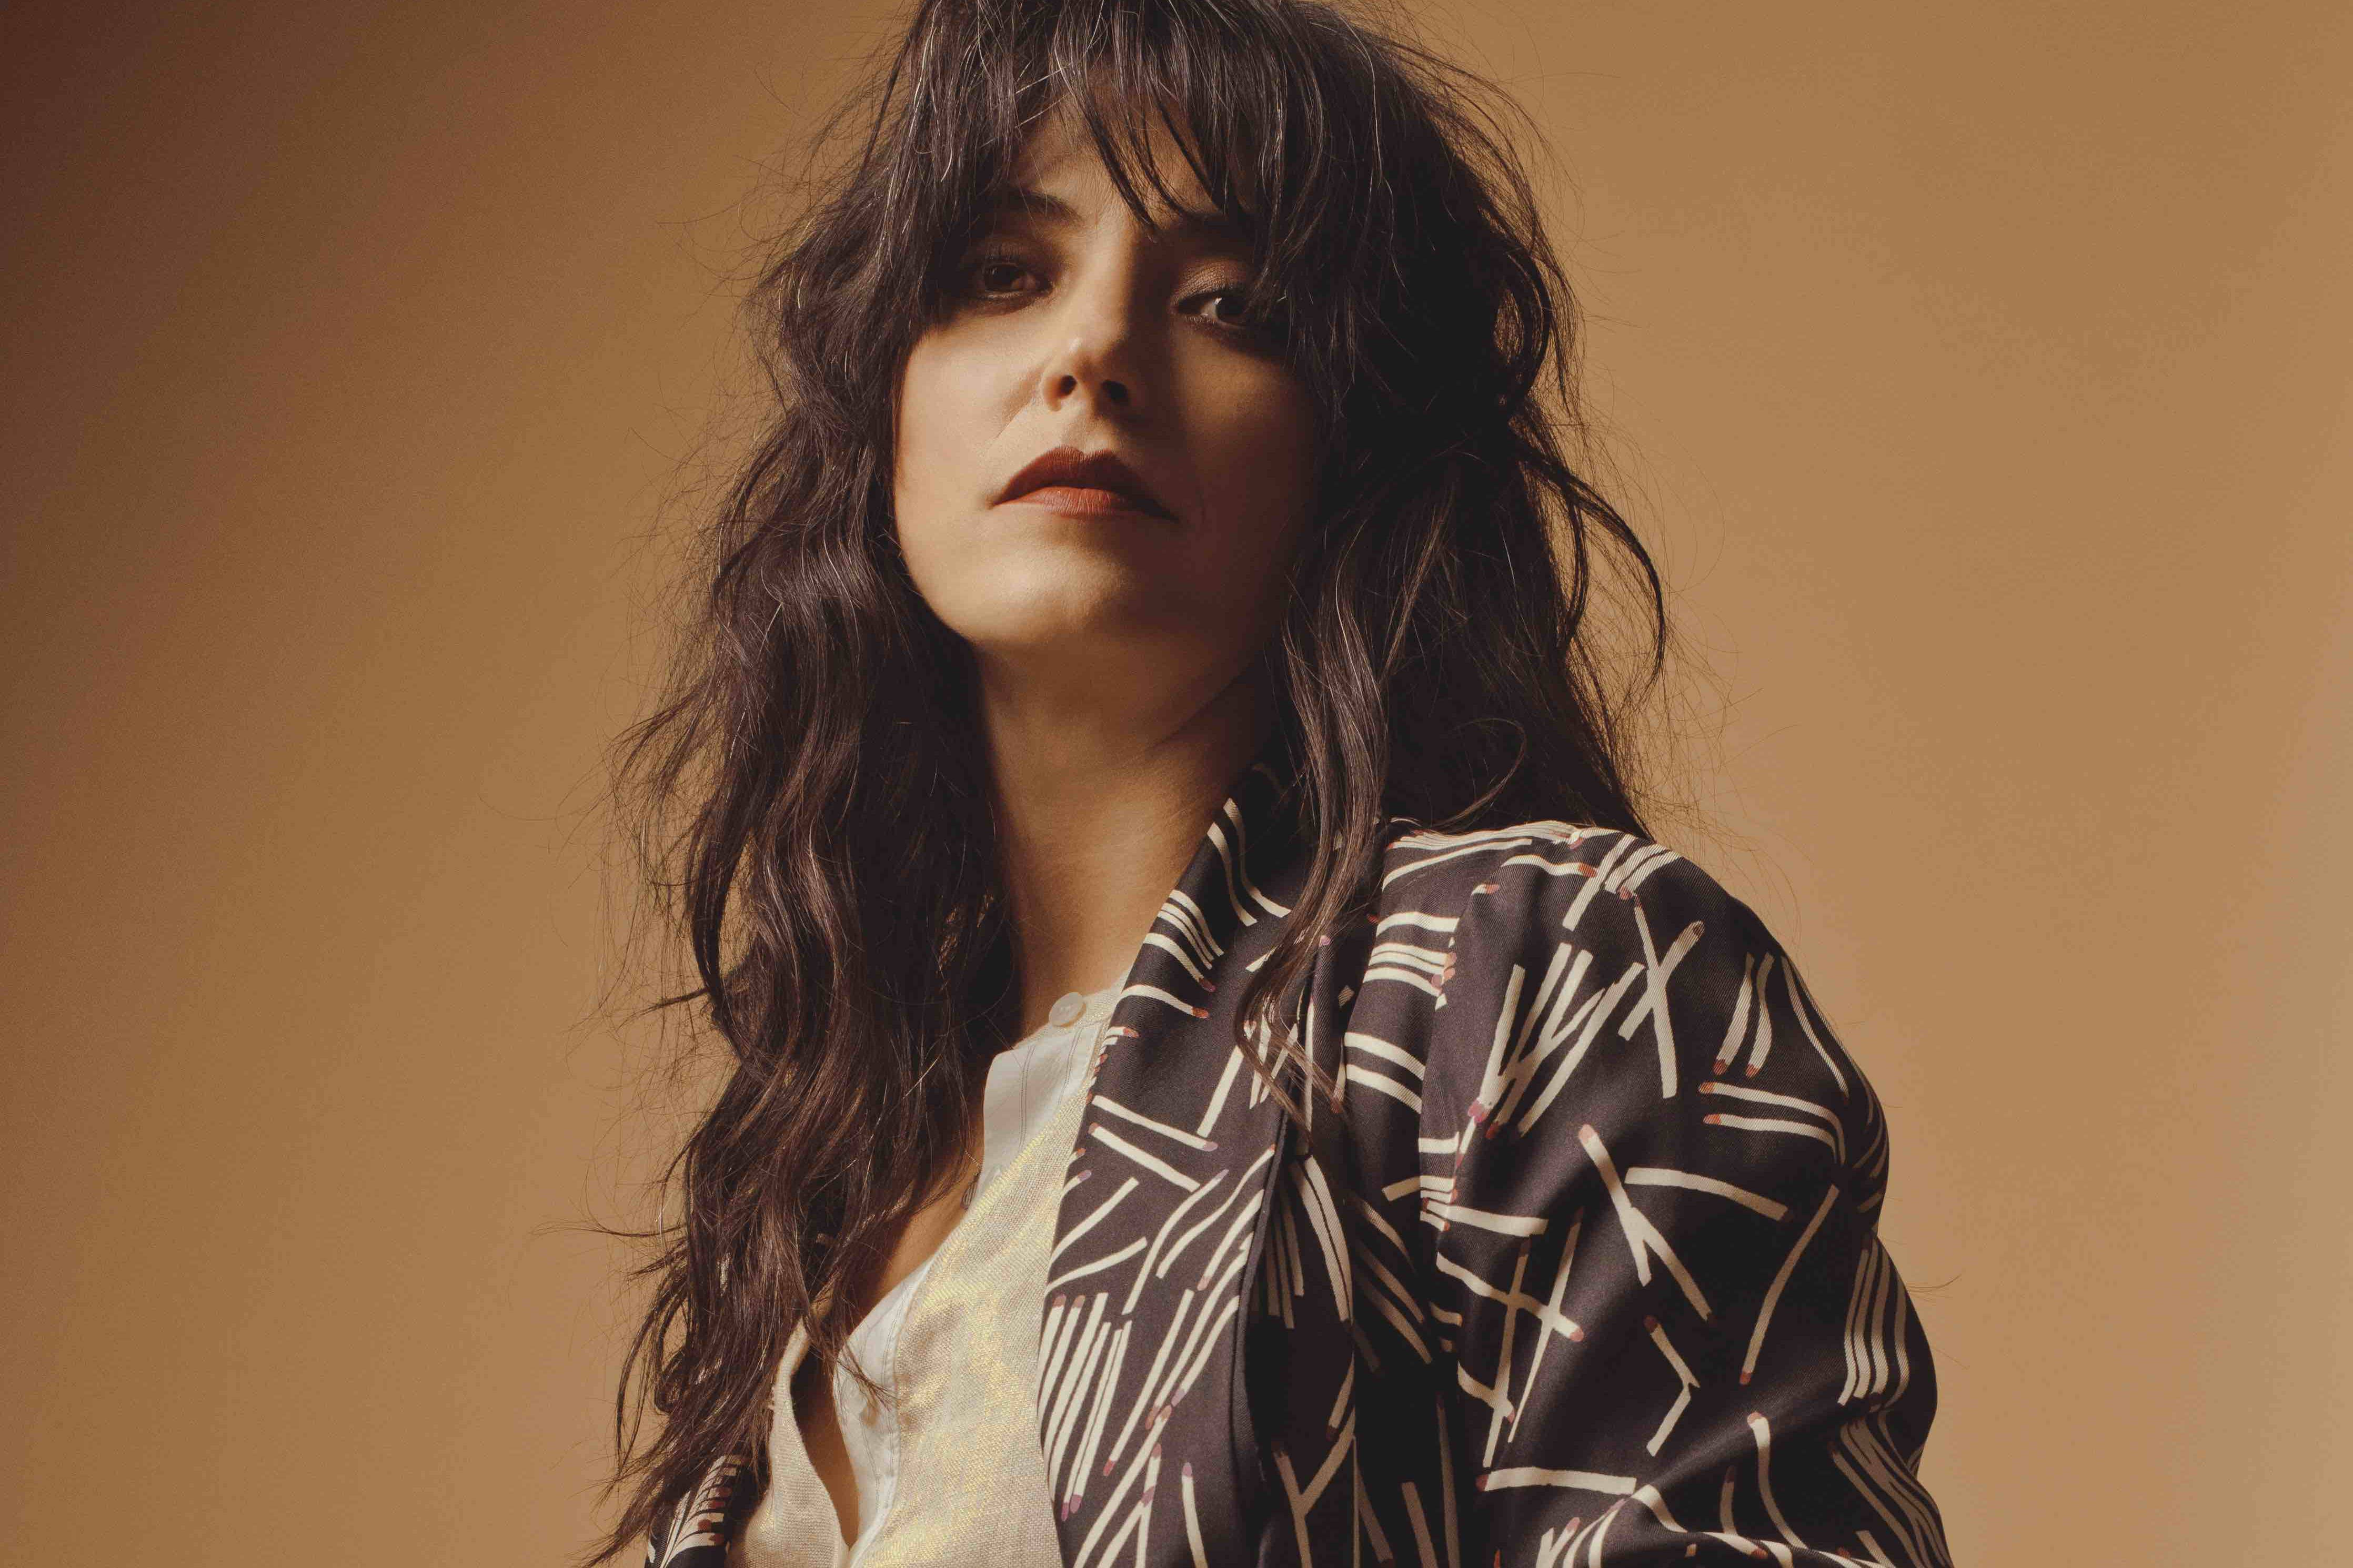 Sharon Van Etten talks reconciling darkness and light on new album 'Remind Me Tomorrow'